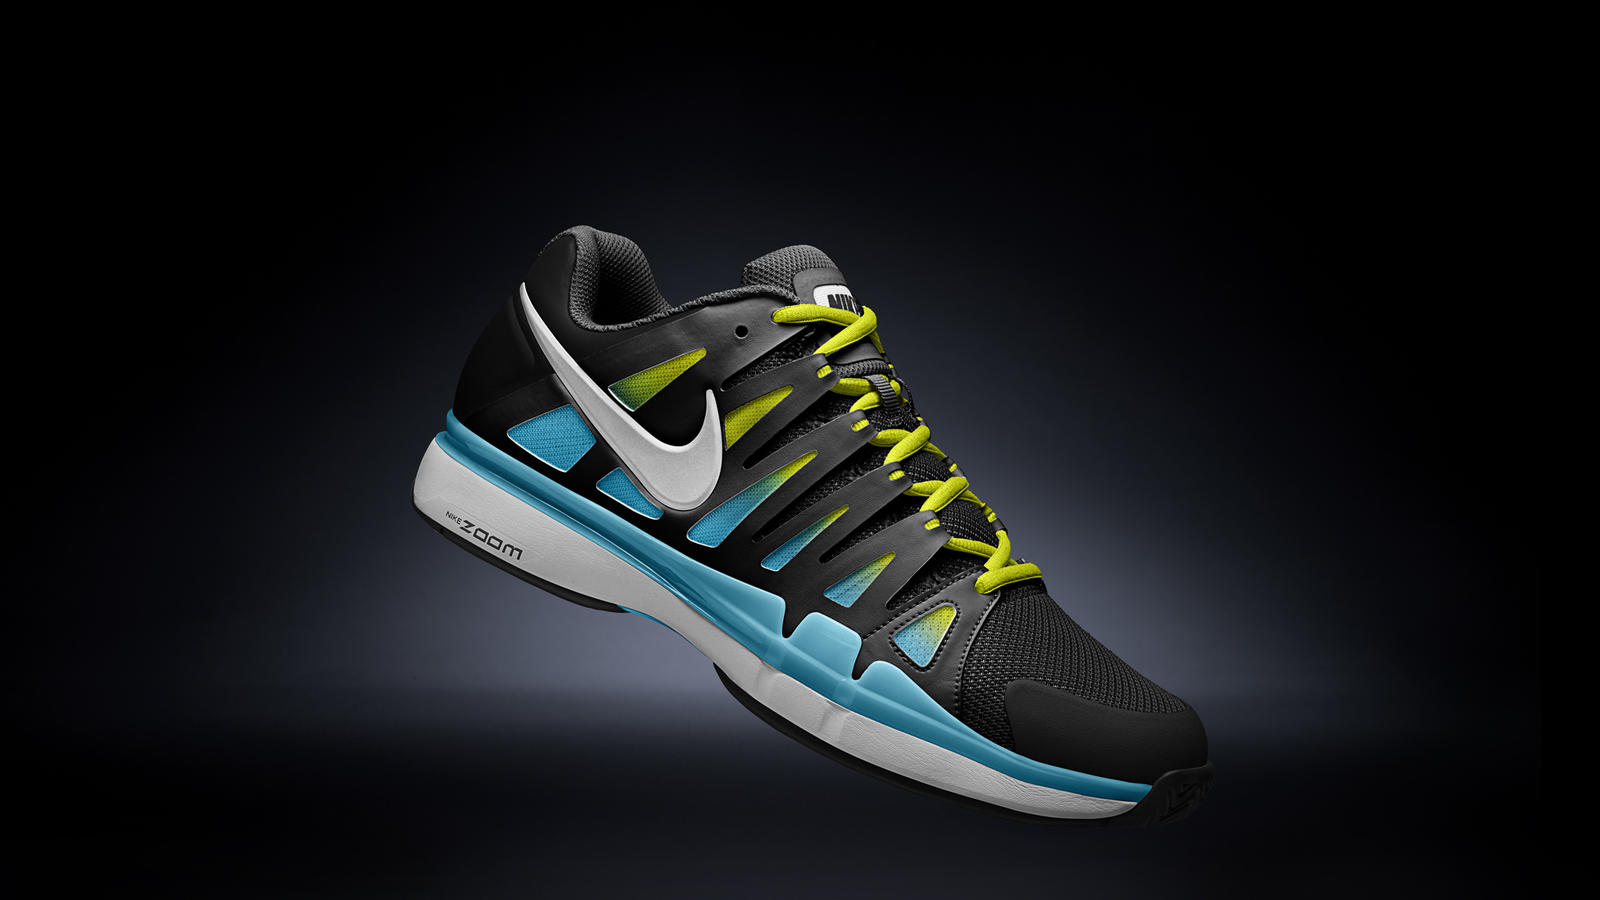 Sp13_TN_NIKEiD_Vapor9_Black